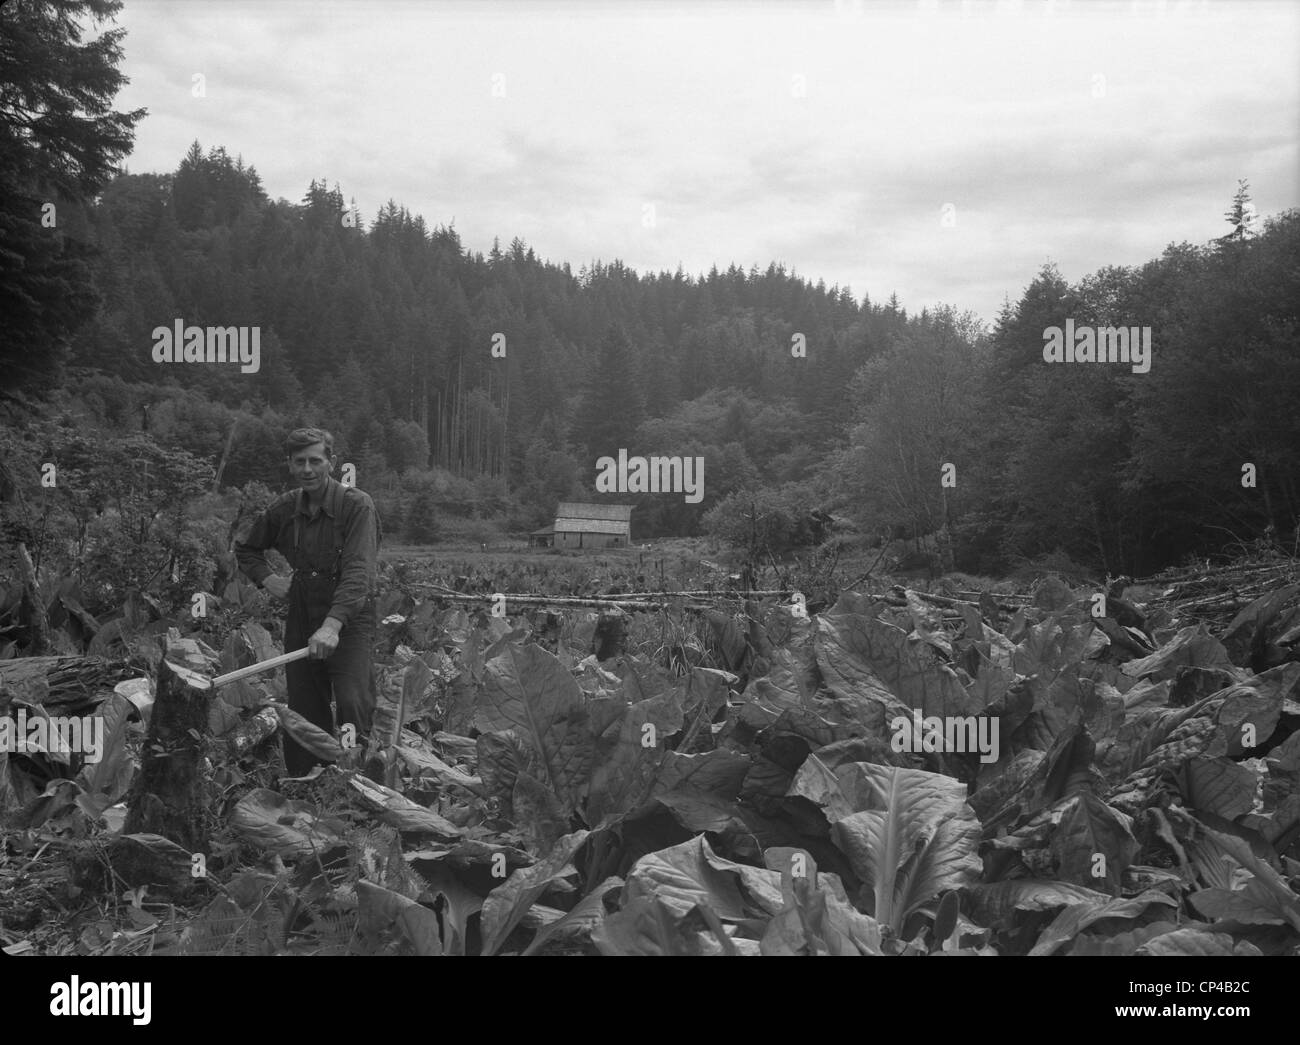 1930's Oregon pioneer. After taking over an abandoned homestead in the Oregon hills, a man struggles to reclaim - Stock Image